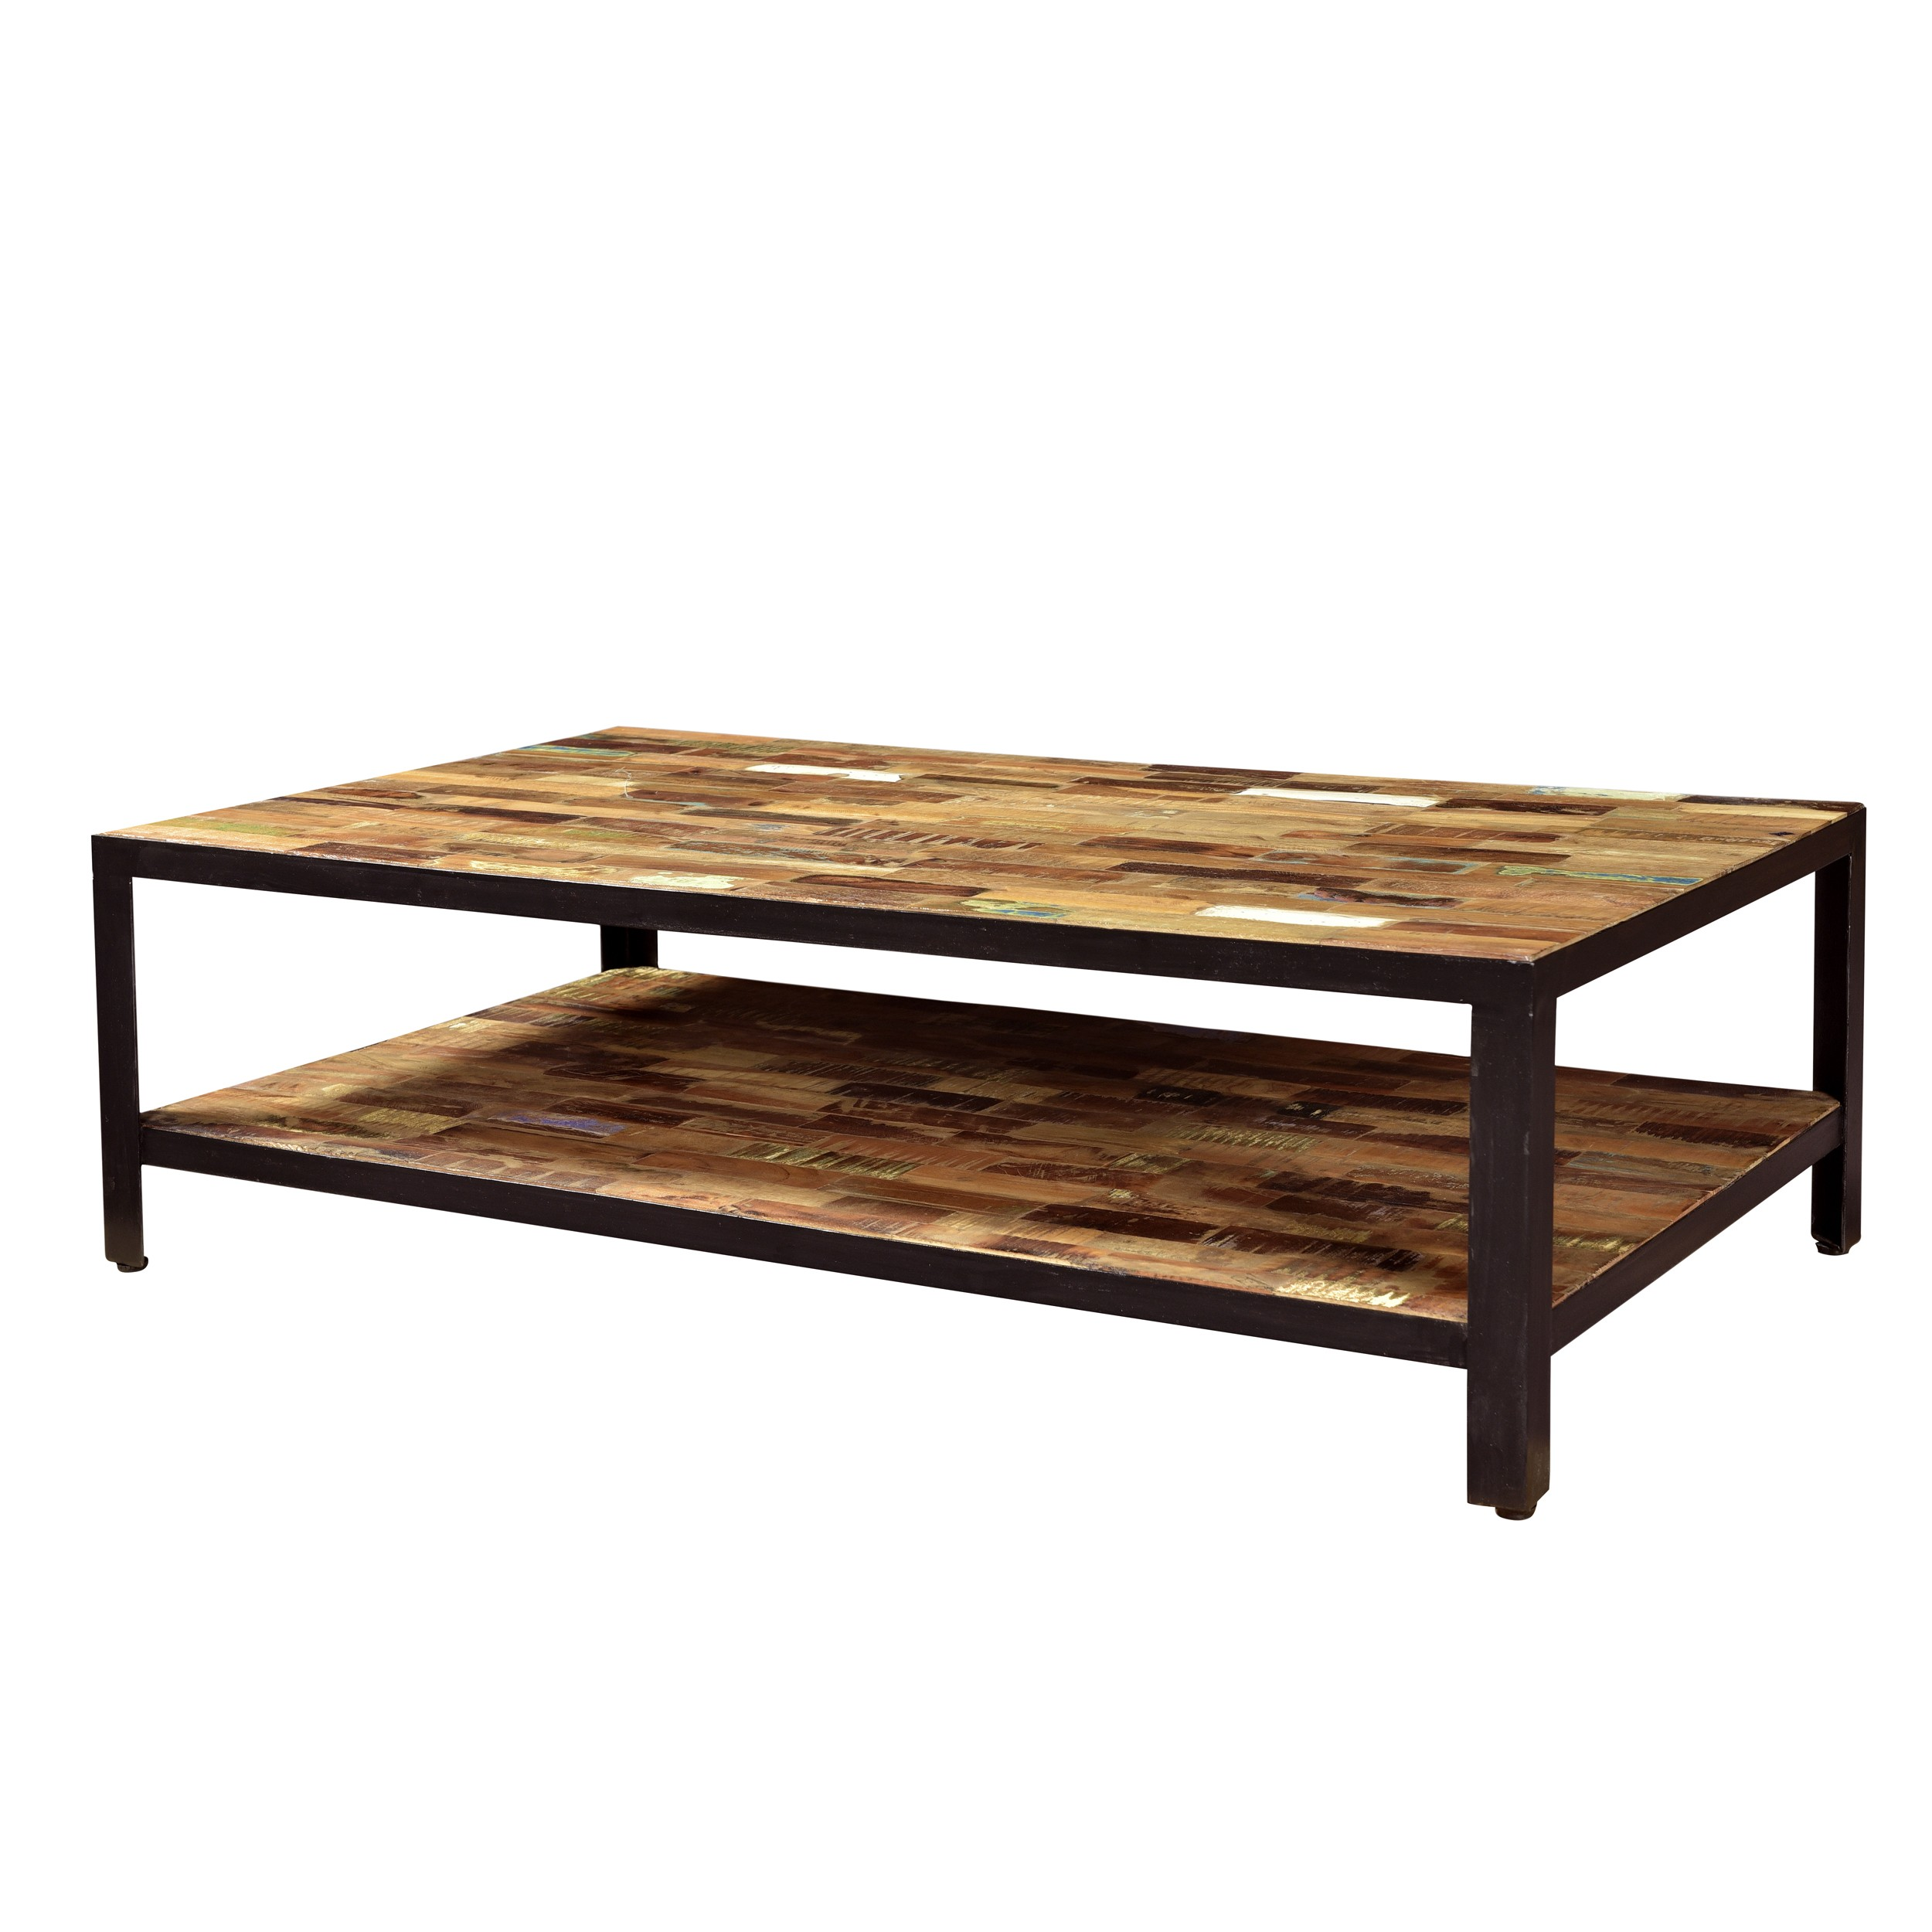 table basse arati rectangulaire d couvrez les tables basses arati rectangulaires rdv d co. Black Bedroom Furniture Sets. Home Design Ideas